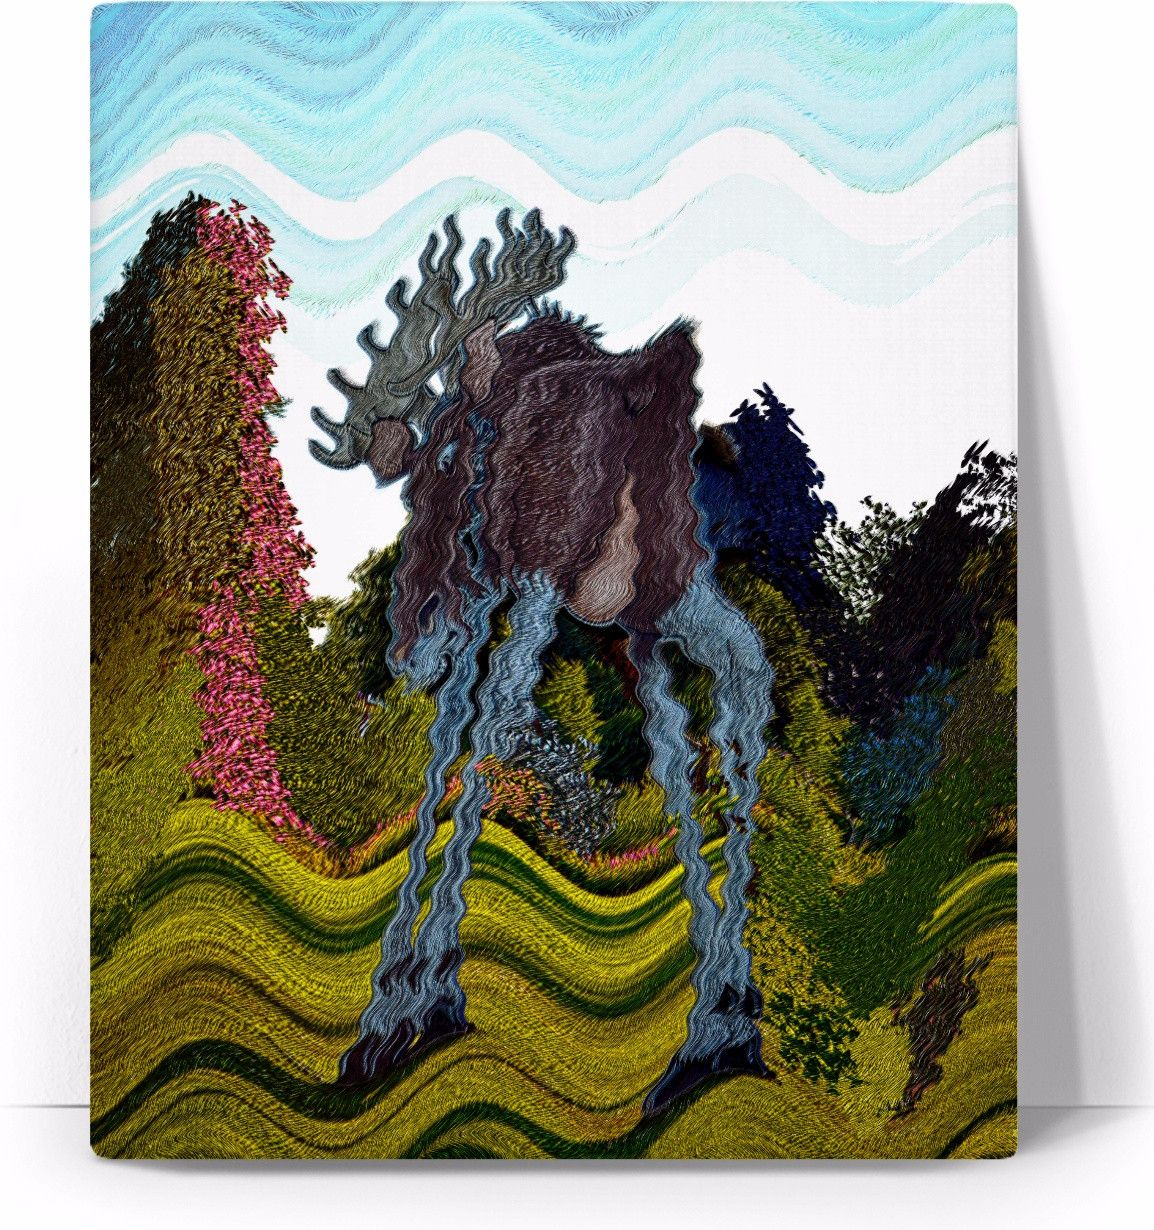 Check out my new product https://www.rageon.com/products/curly-moose-canvas on RageOn!